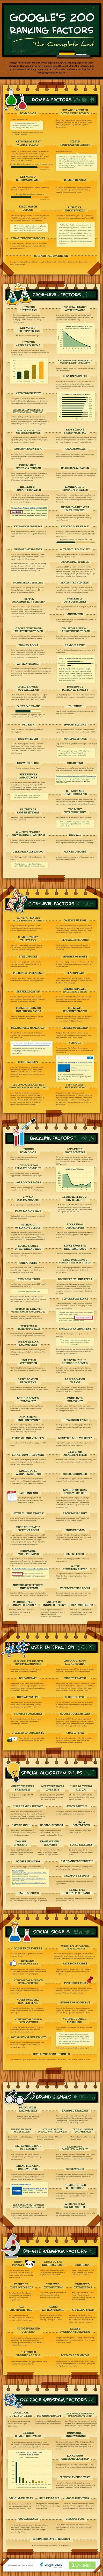 Search Ranking Factors 200 Google infographic   SEO, SMM   Scoop.it